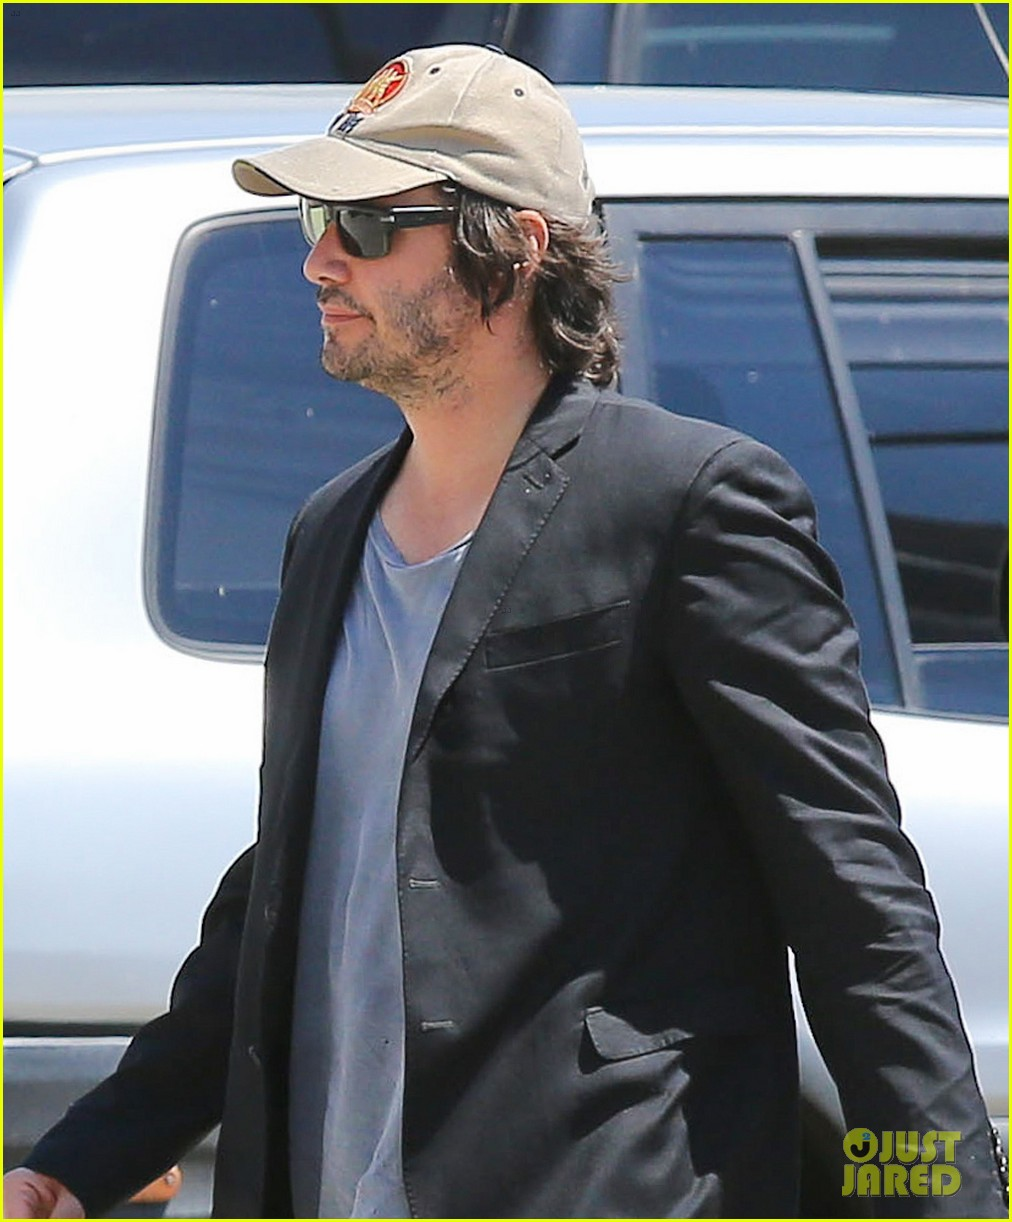 keanu reeves wears interesting outfit at the gym 022935746